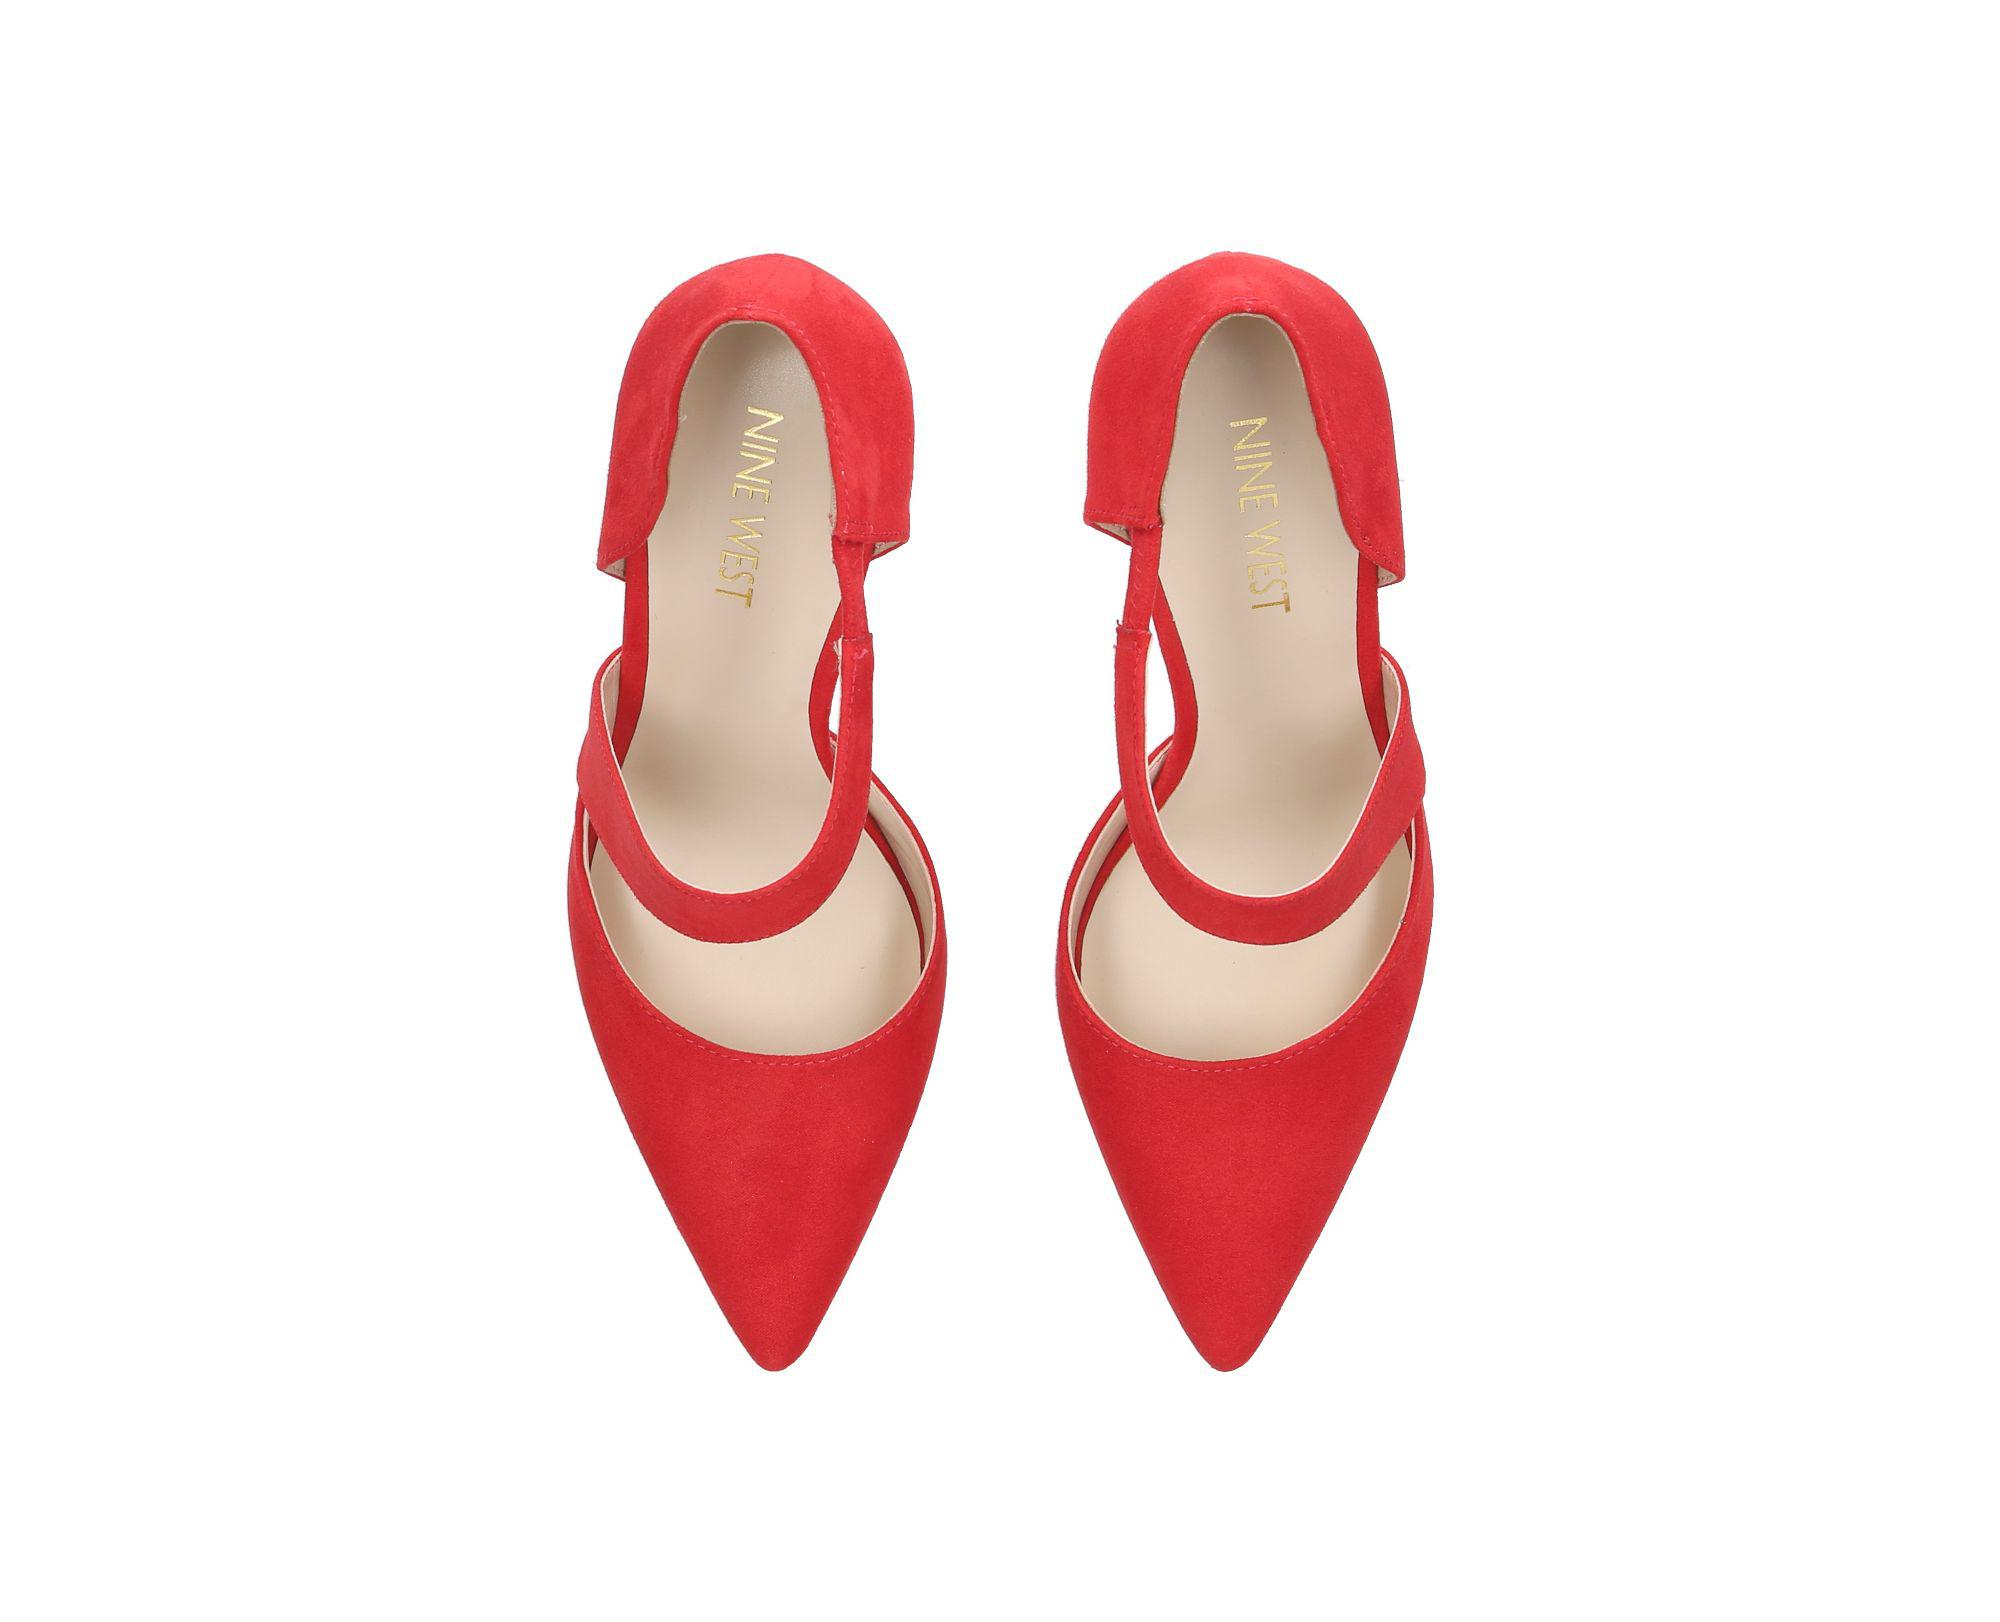 af9745c92c4 Nine West - Red Kremi High Heel Sandals - Lyst. View fullscreen